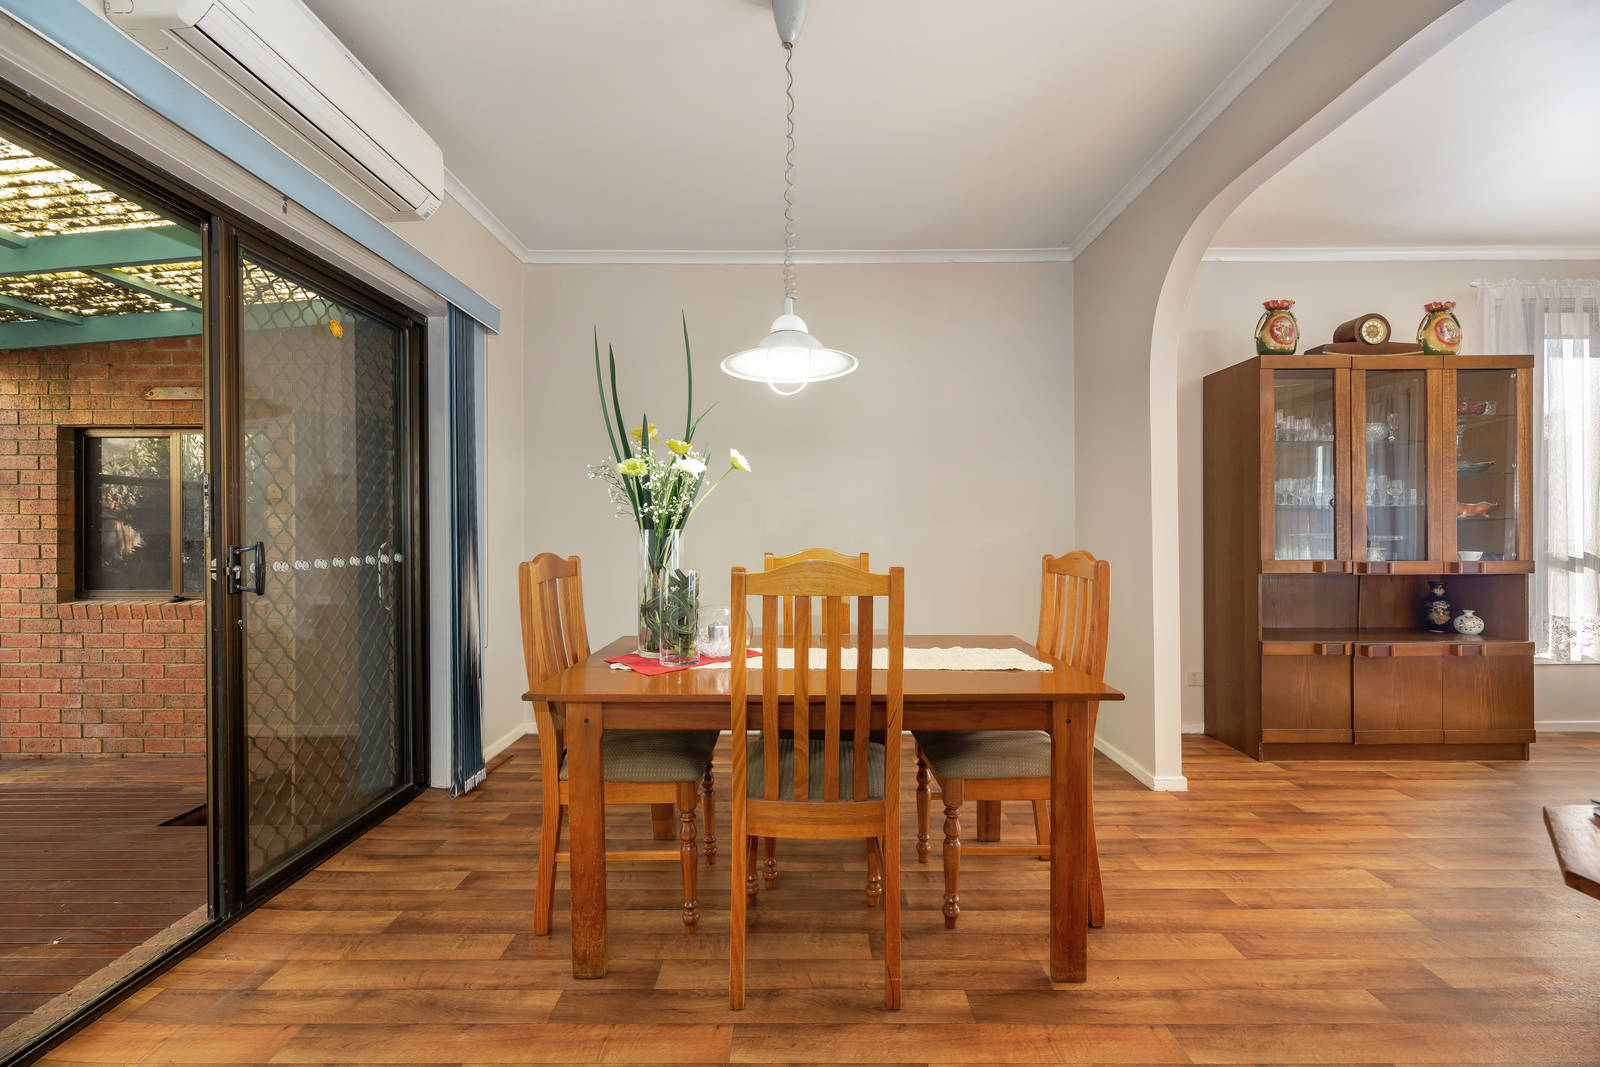 2/15 Downs Street, Pascoe Vale, VIC, 3044 image 4